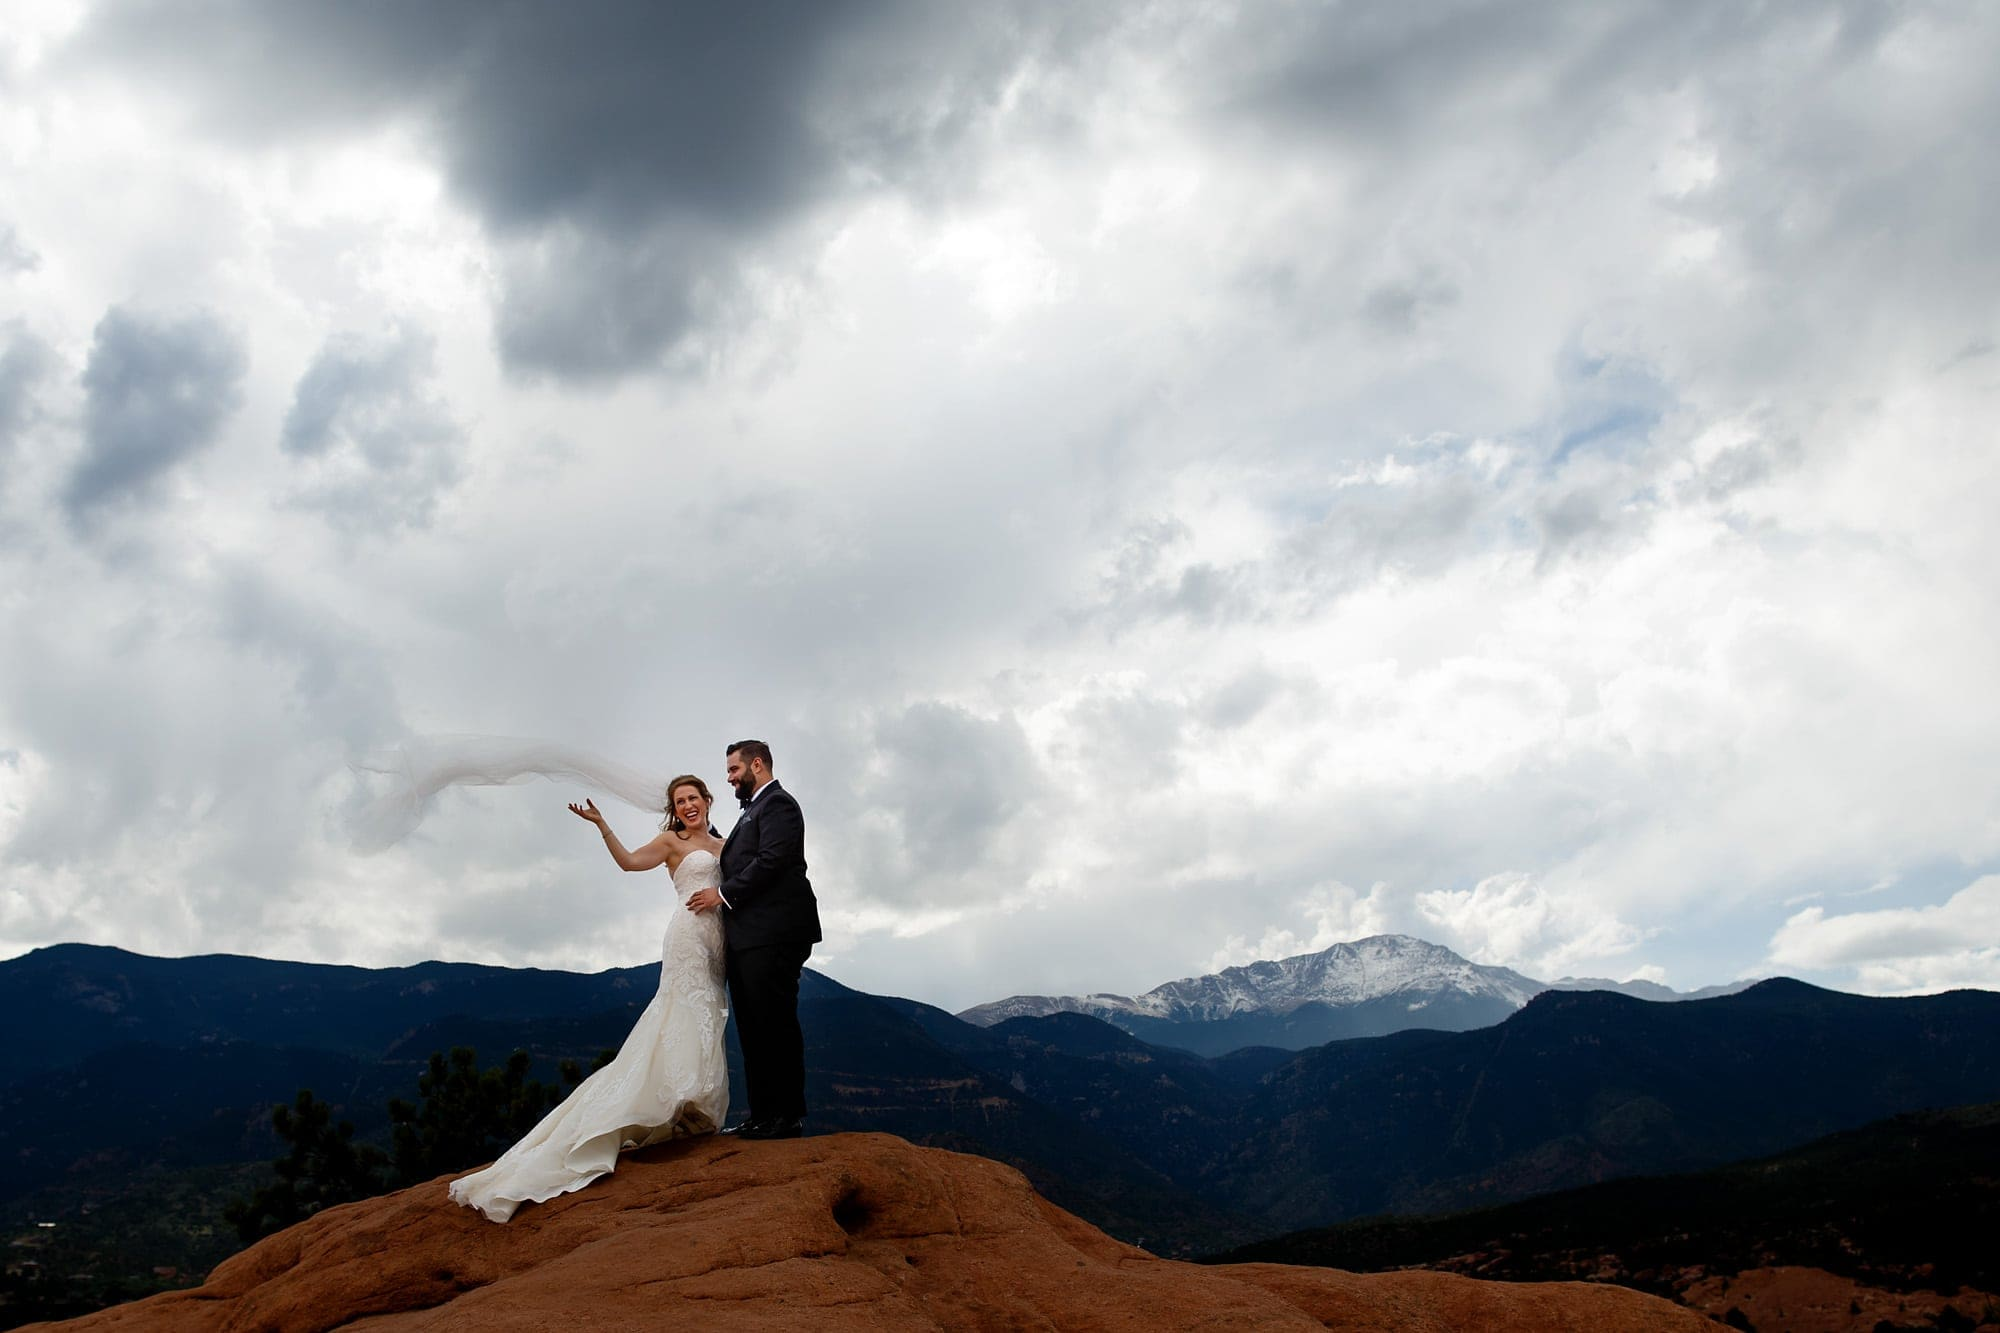 The bride's viel blows in the wind at Garden of the Gods park near Pikes Peak in Colorado Springs